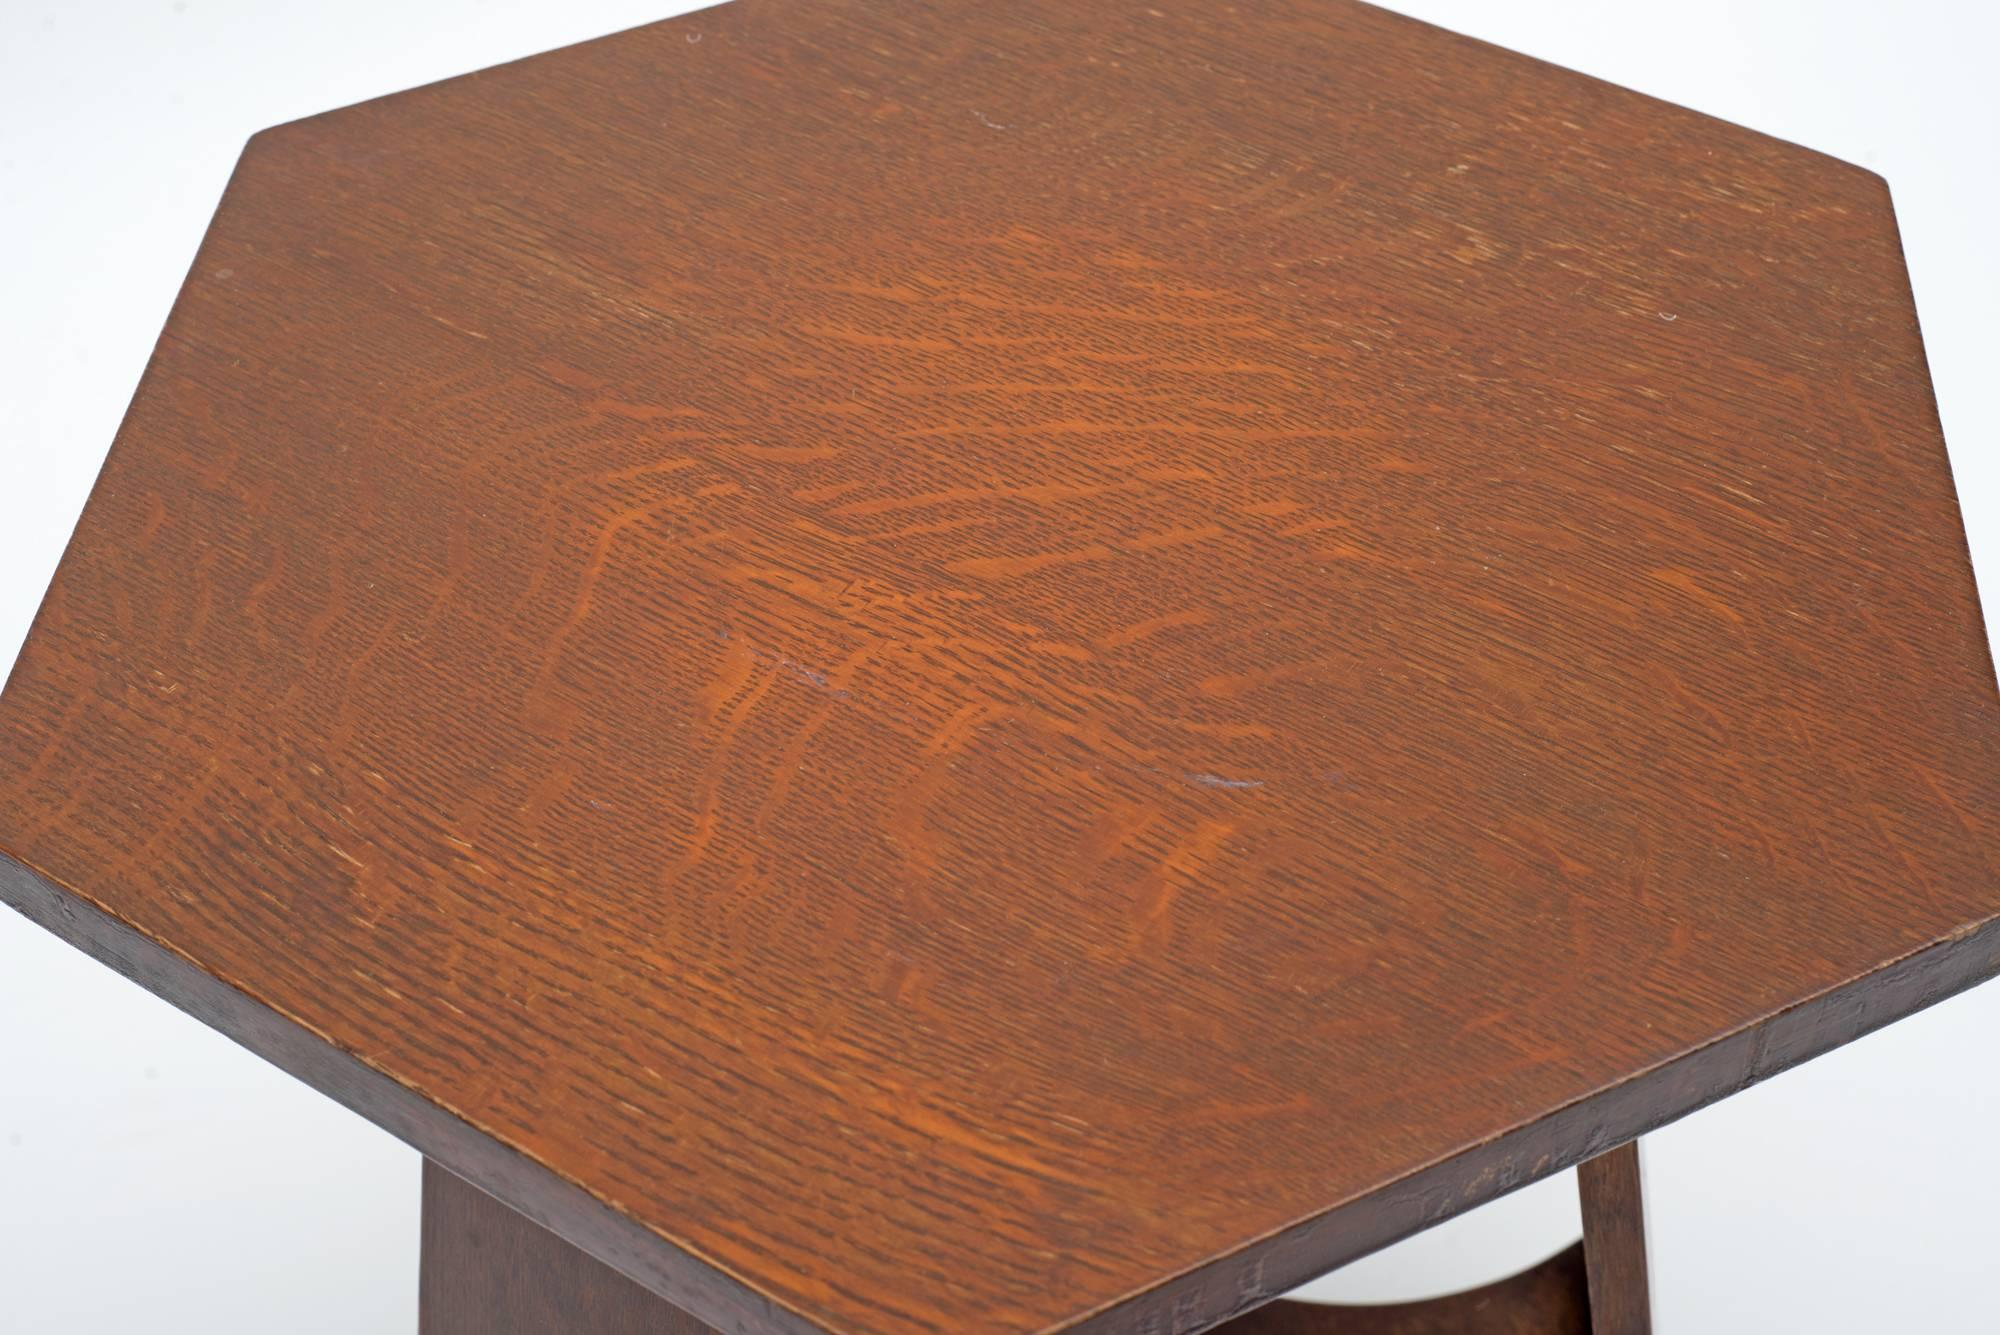 Arts And Crafts Stickley Brothers Quaint Furniture Co. Hexagonal Oak Taboret  Table, USA,